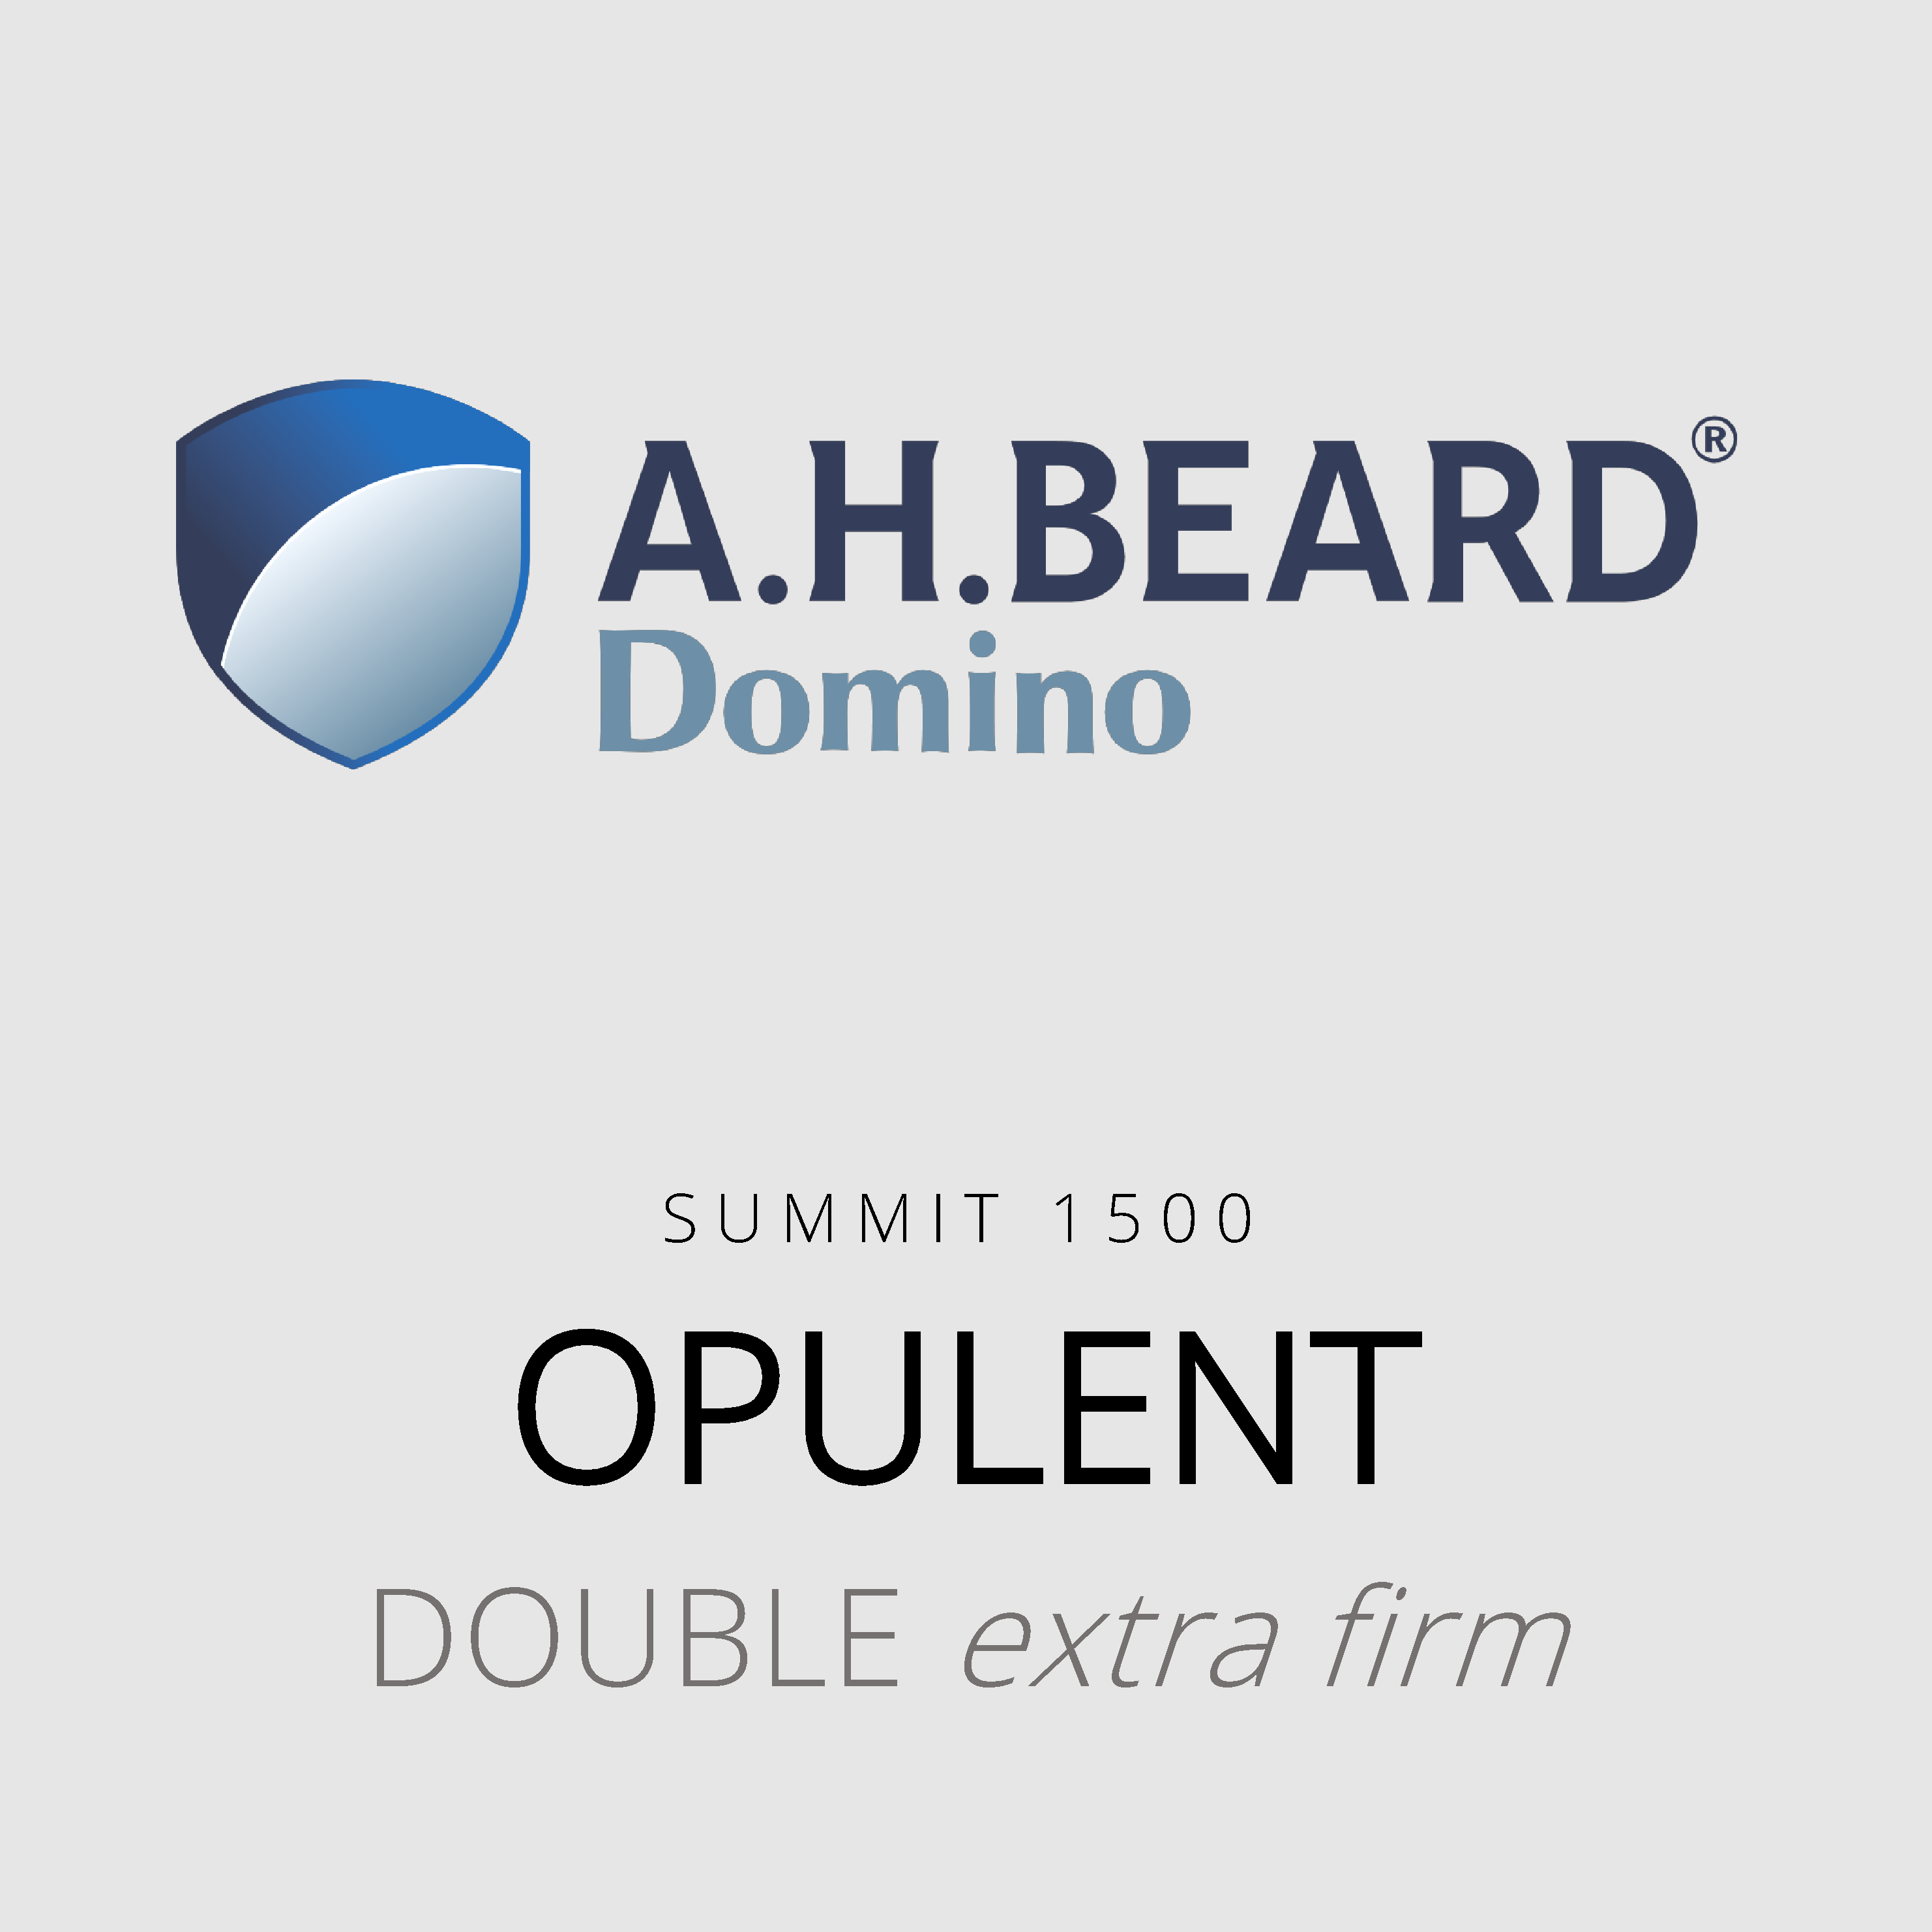 AH Beard Domino – Opulent – Summit 1500 – Double Extra Firm Mattress